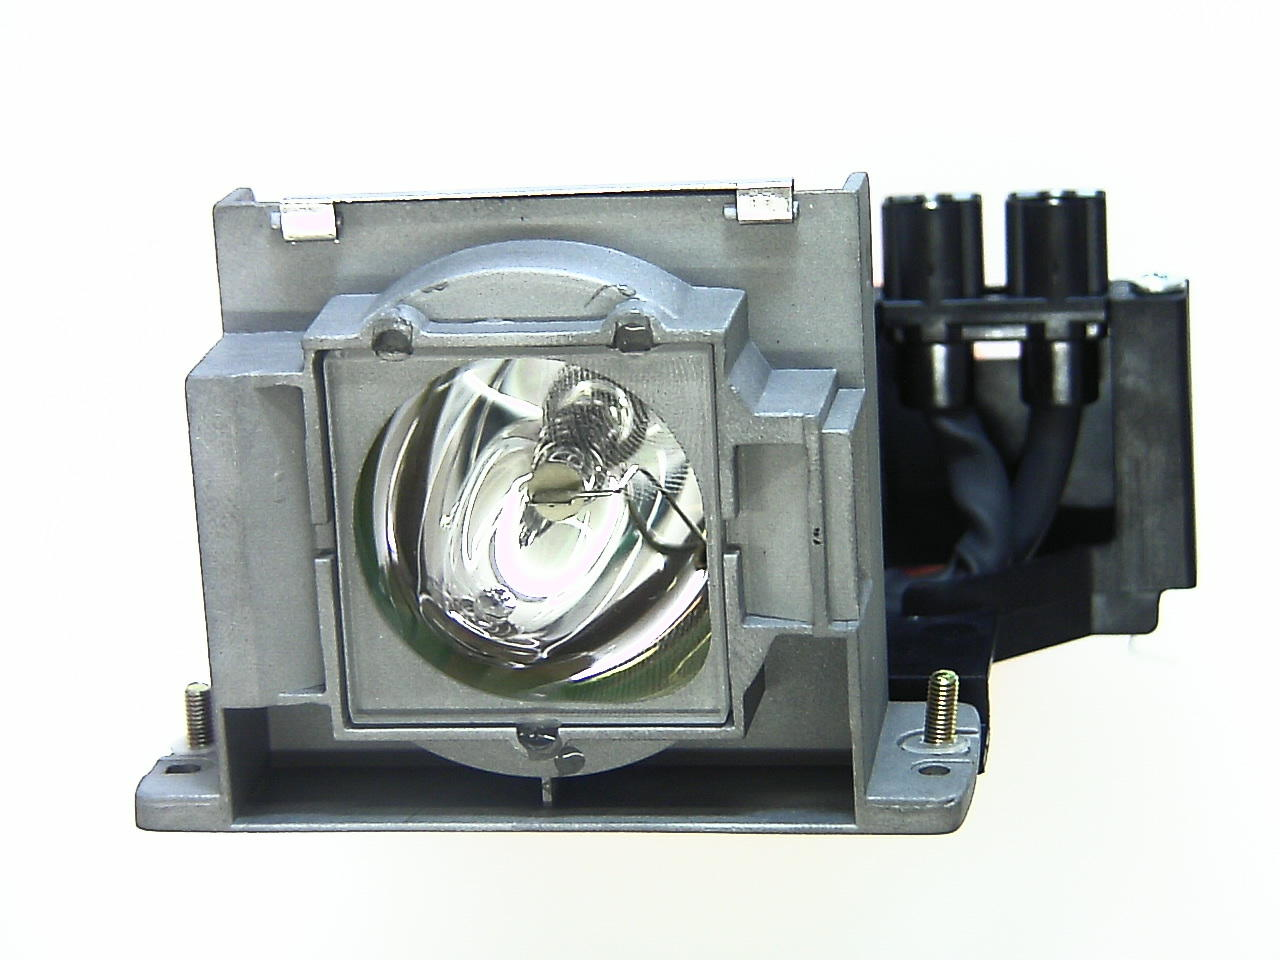 V7 Projector Lamp for selected projectors by MITSUBISHI, SAVILLE AV,